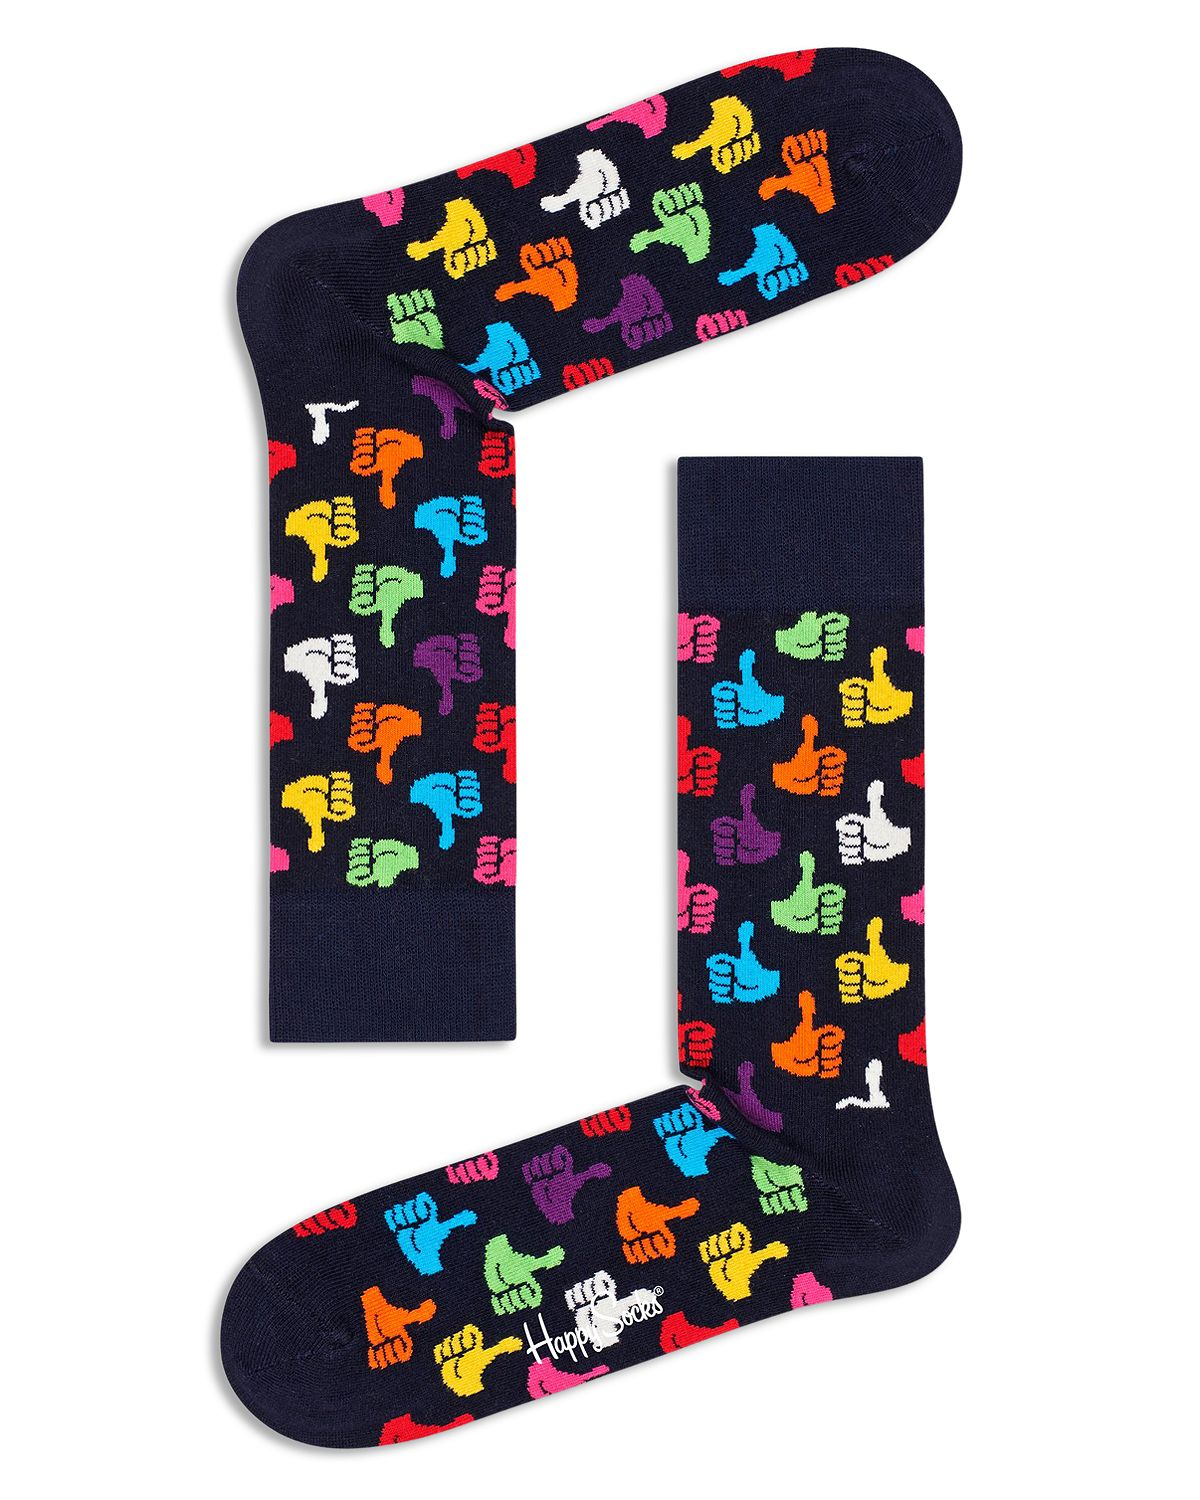 Happy Socks Thumbs Up Crew Socks Navy/Red